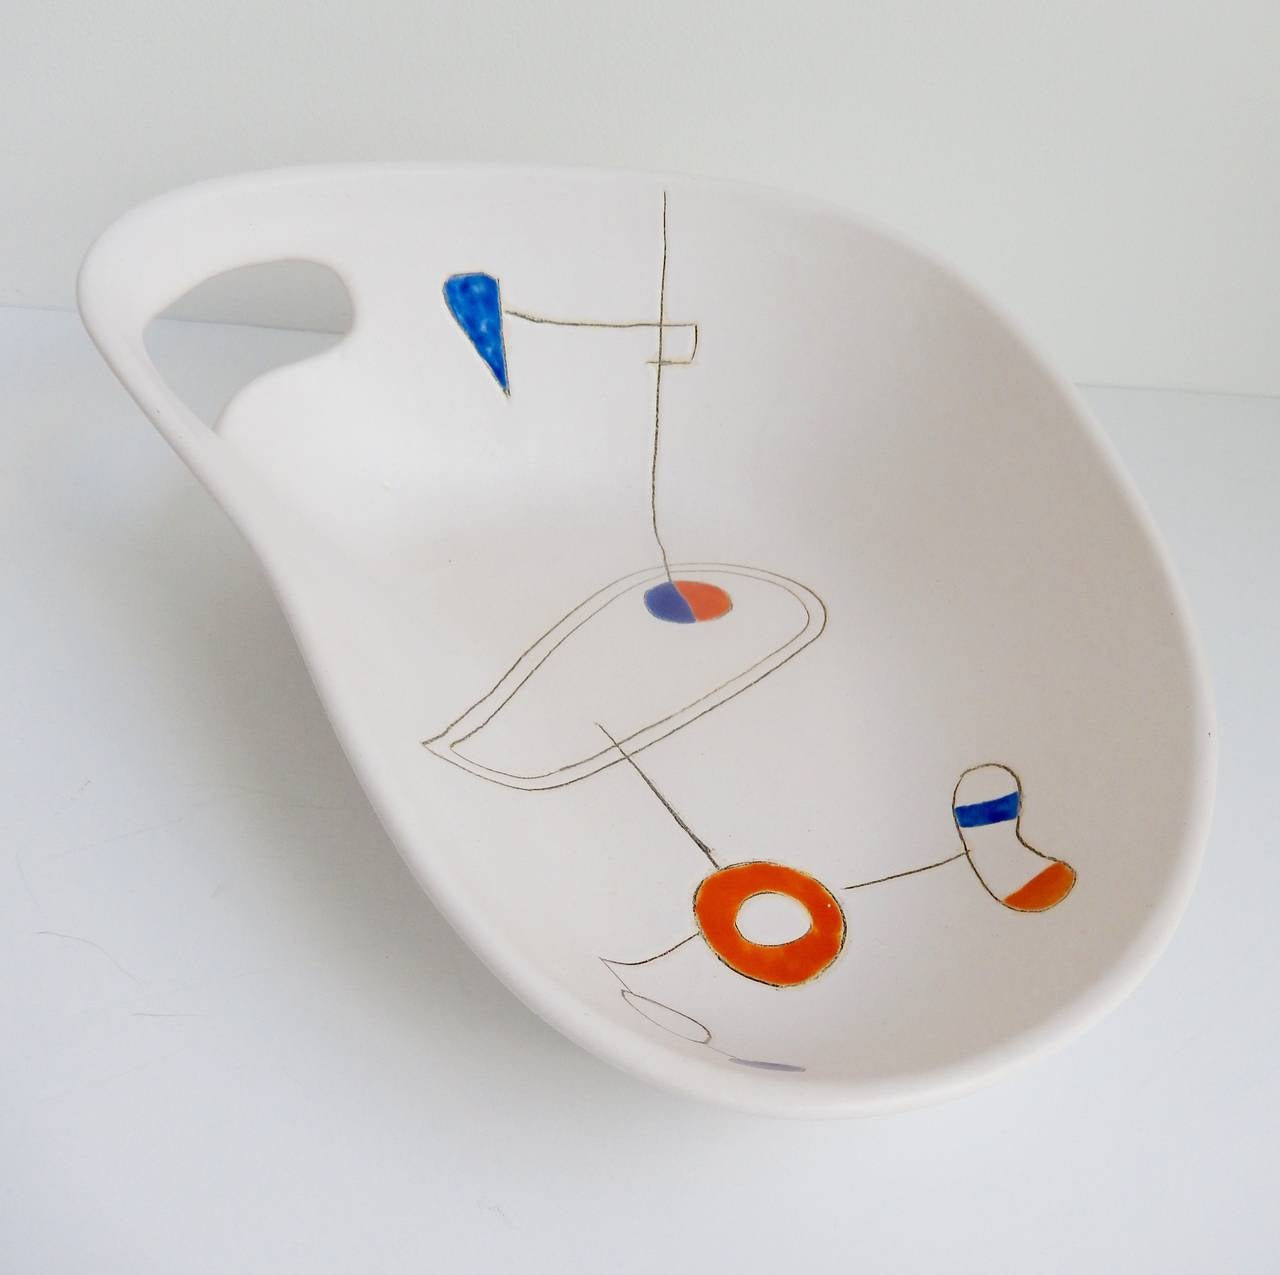 A glazed earthenware bowl with a biomorphic shape and stylized abstract design by the ceramist and painter Peter Orlando (1921-2009). Though born in the US, Orlando studied in France and, along with his wife, Denise, opened a workshop and studio in